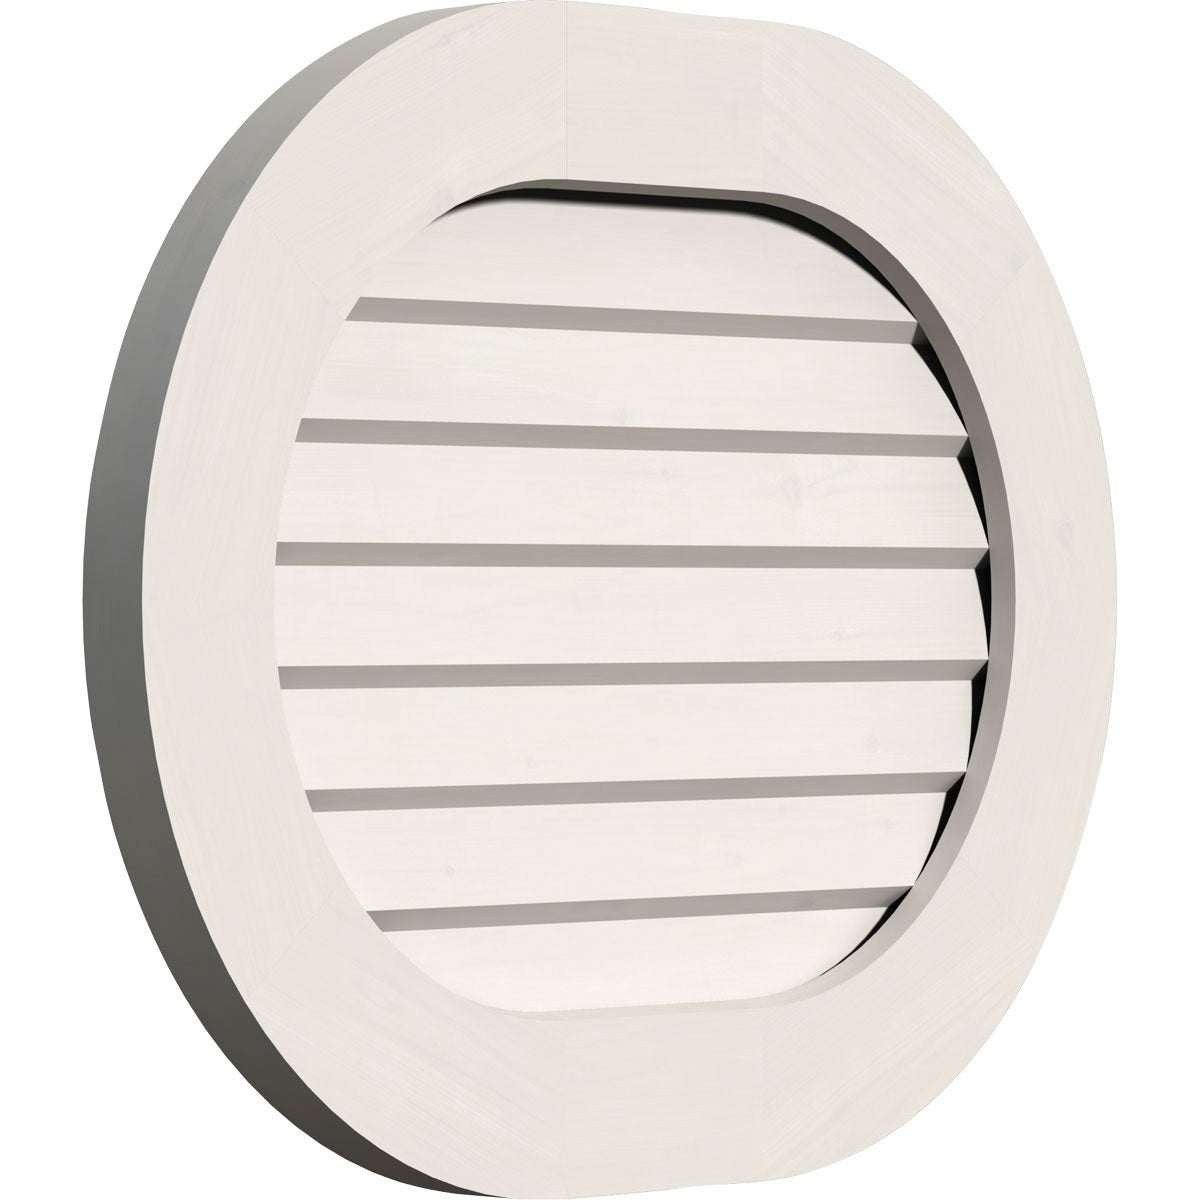 Horizontal Round Ended Gable Vent (Functional / 36W x 26H)